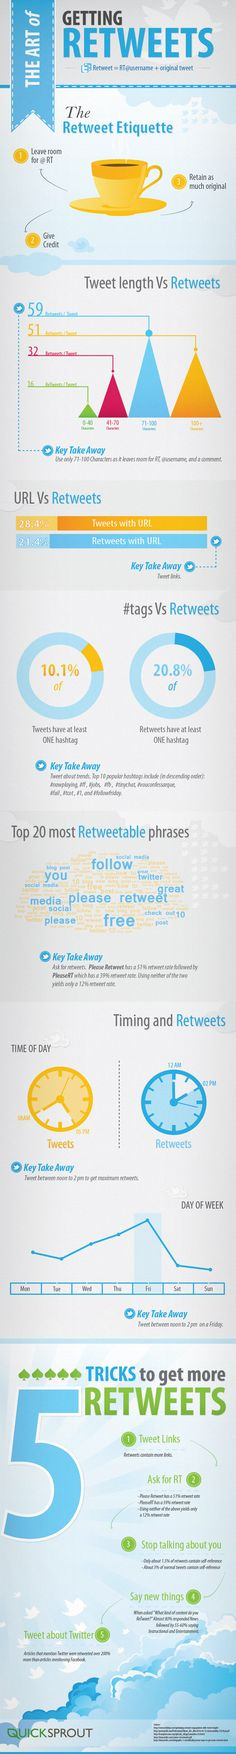 #Twitter > How to get more RTs (Dec 2012) | #SocialMedia #Infographic